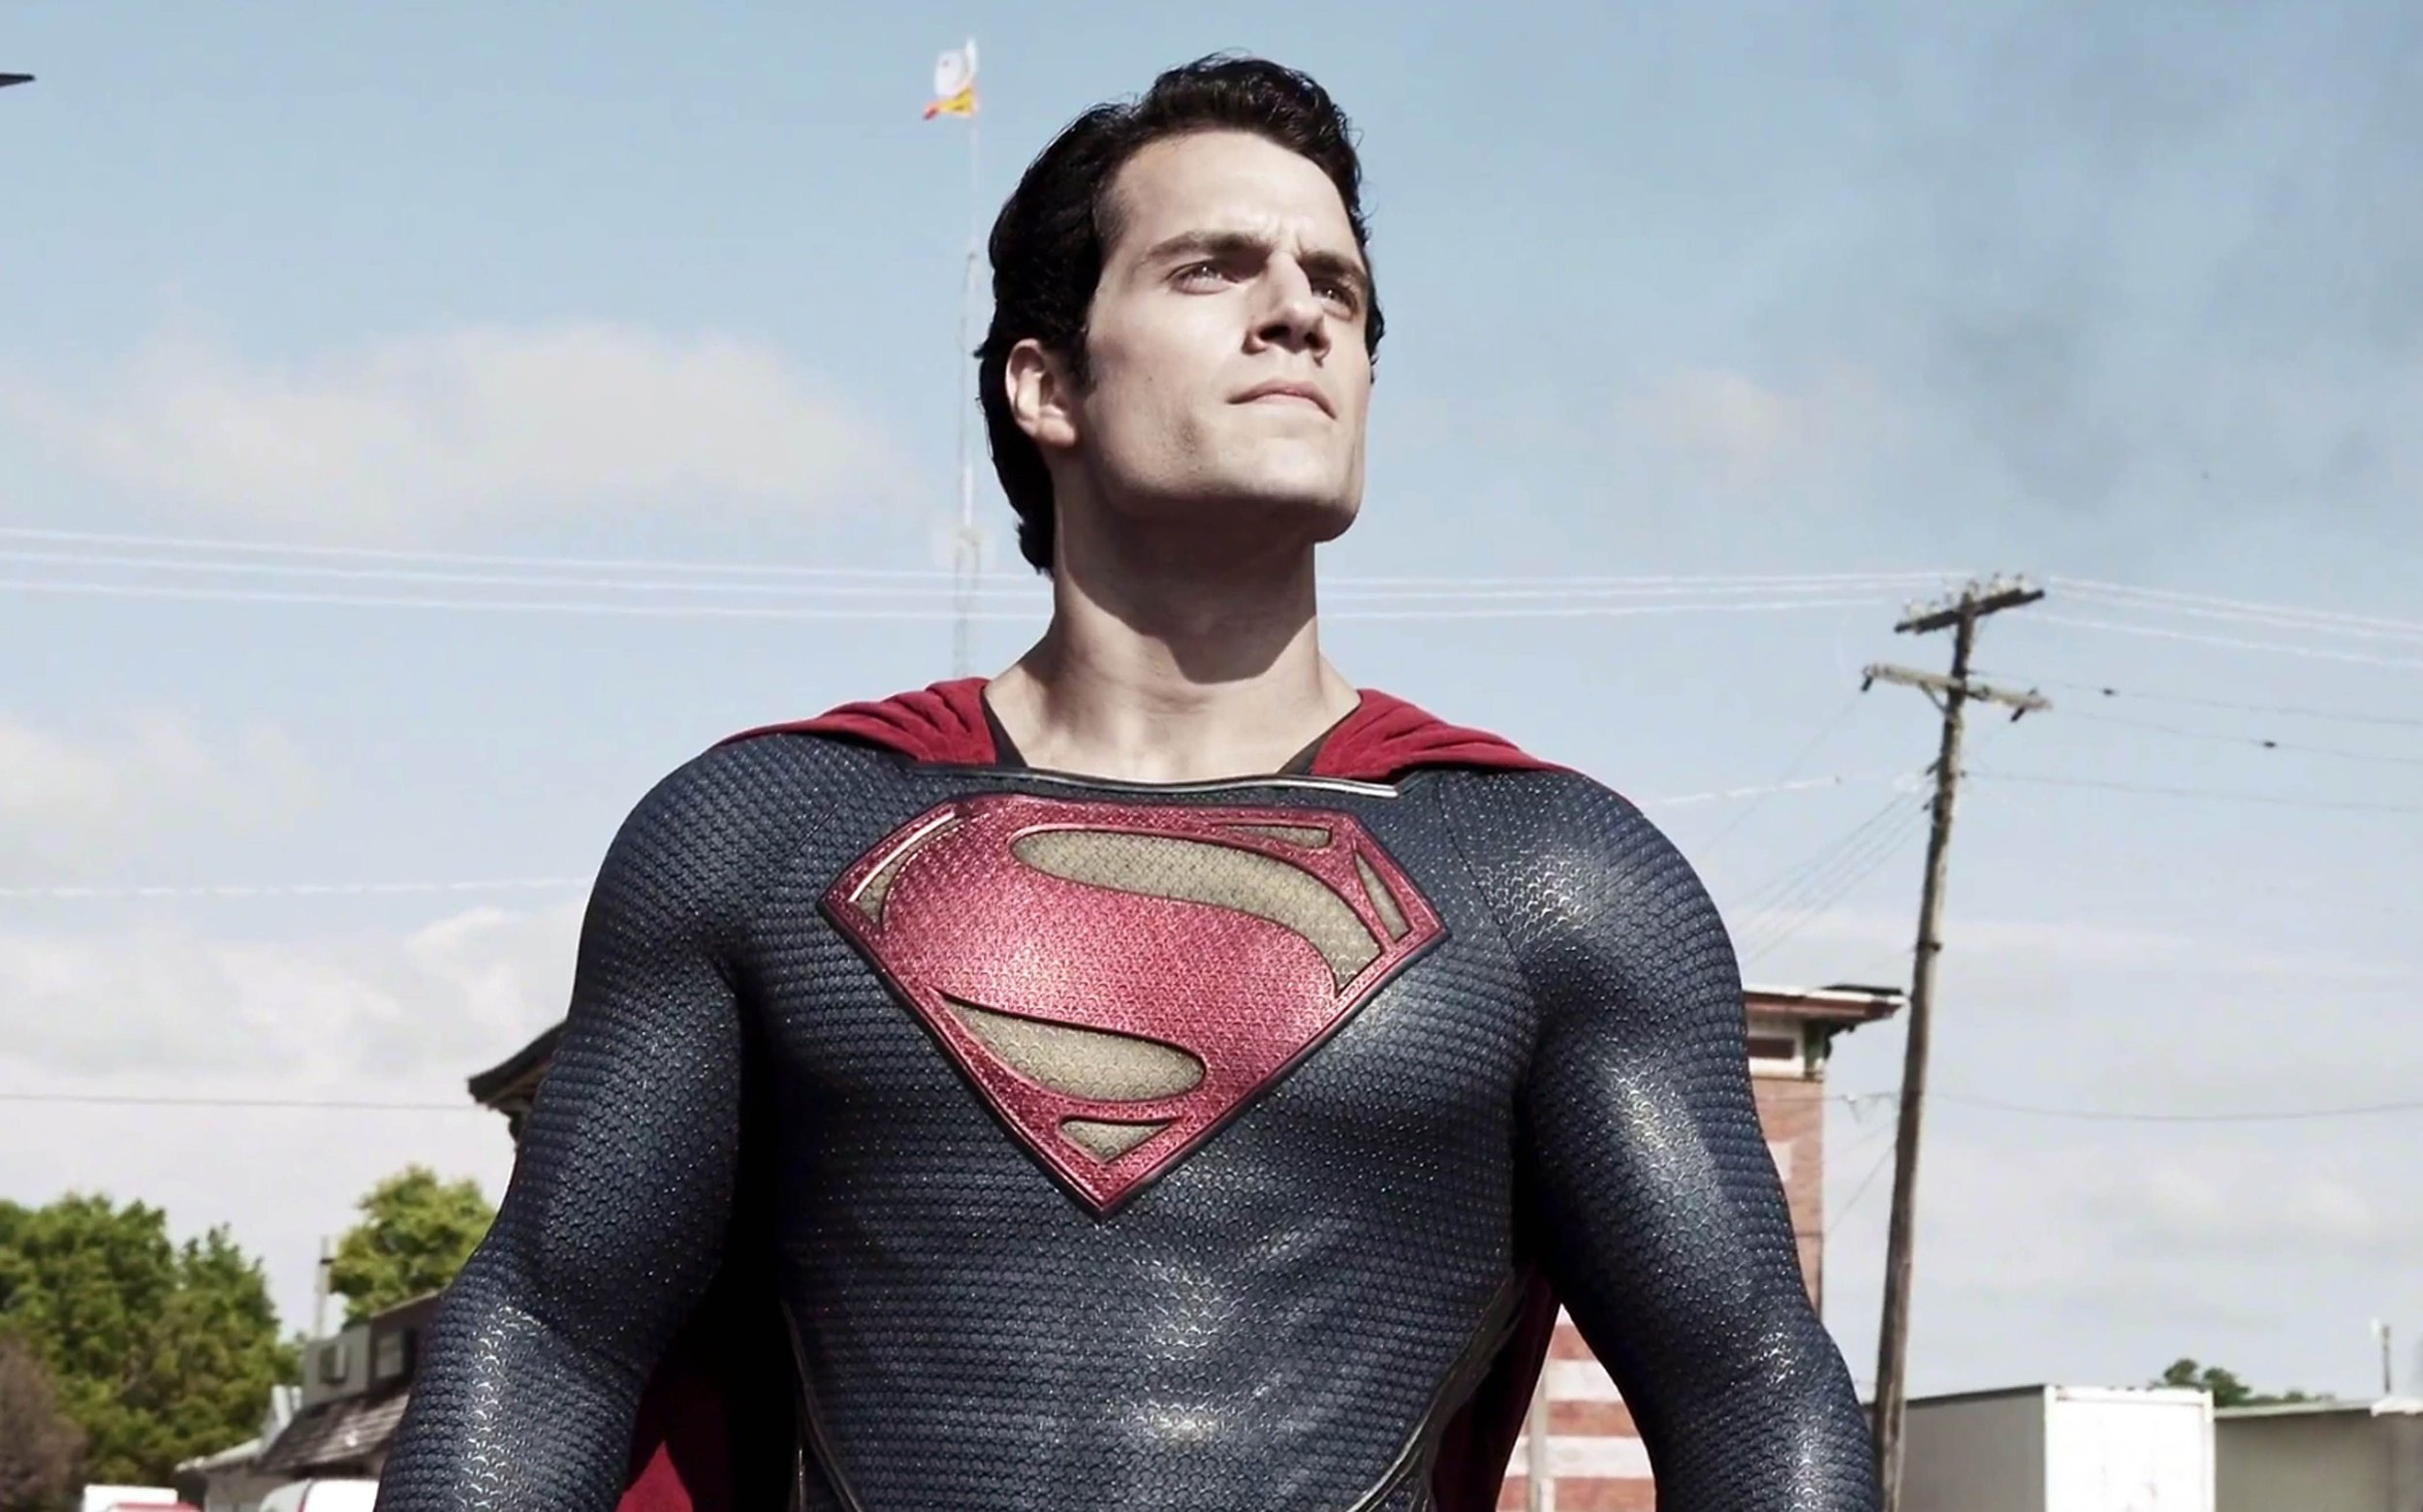 henry cavill as superman.jpg